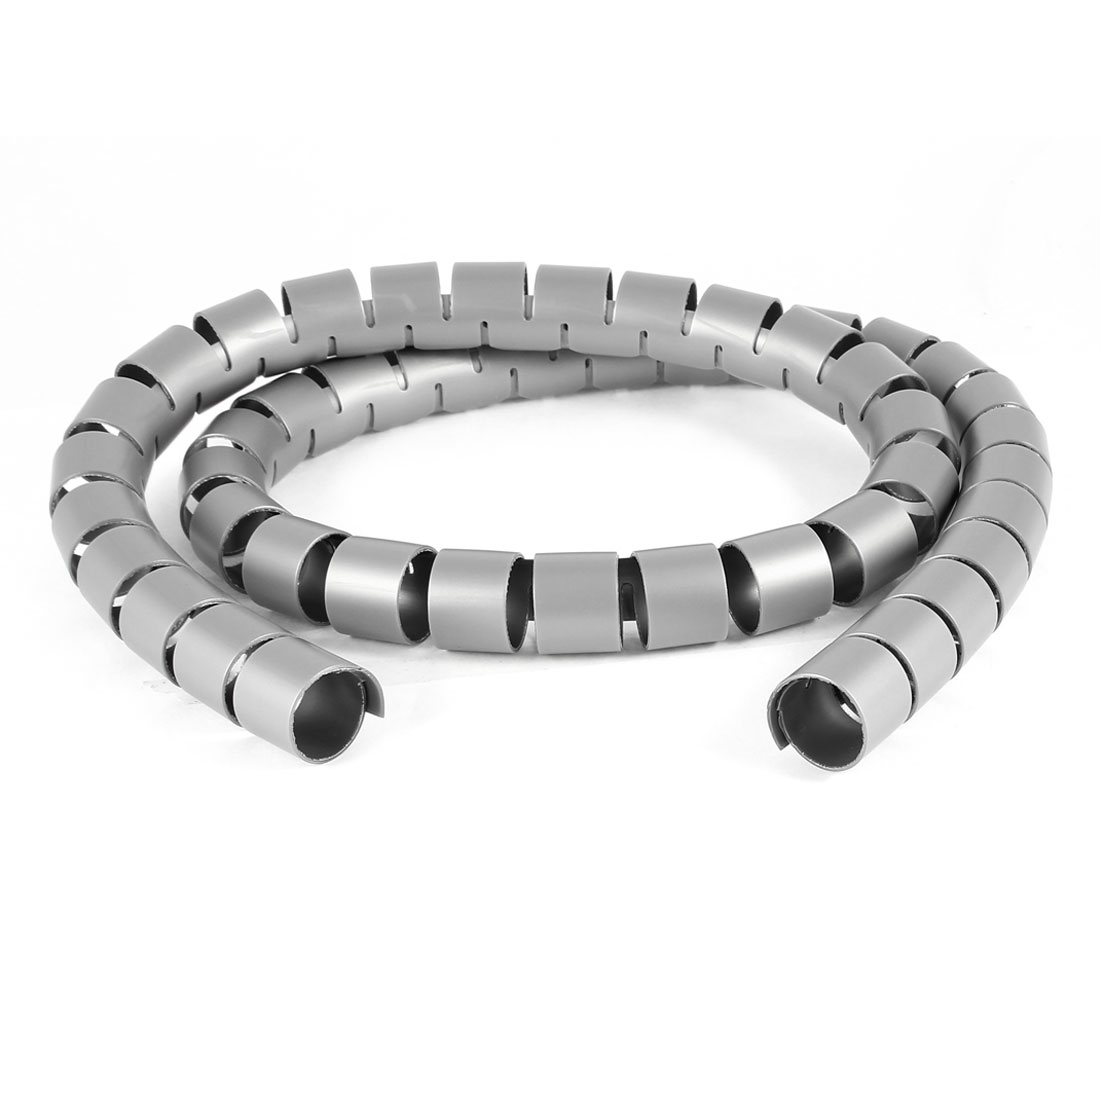 Cable Tube Spiral Wrapping Band Wire Wrap Cord Management Gray 1M 3.3Ft